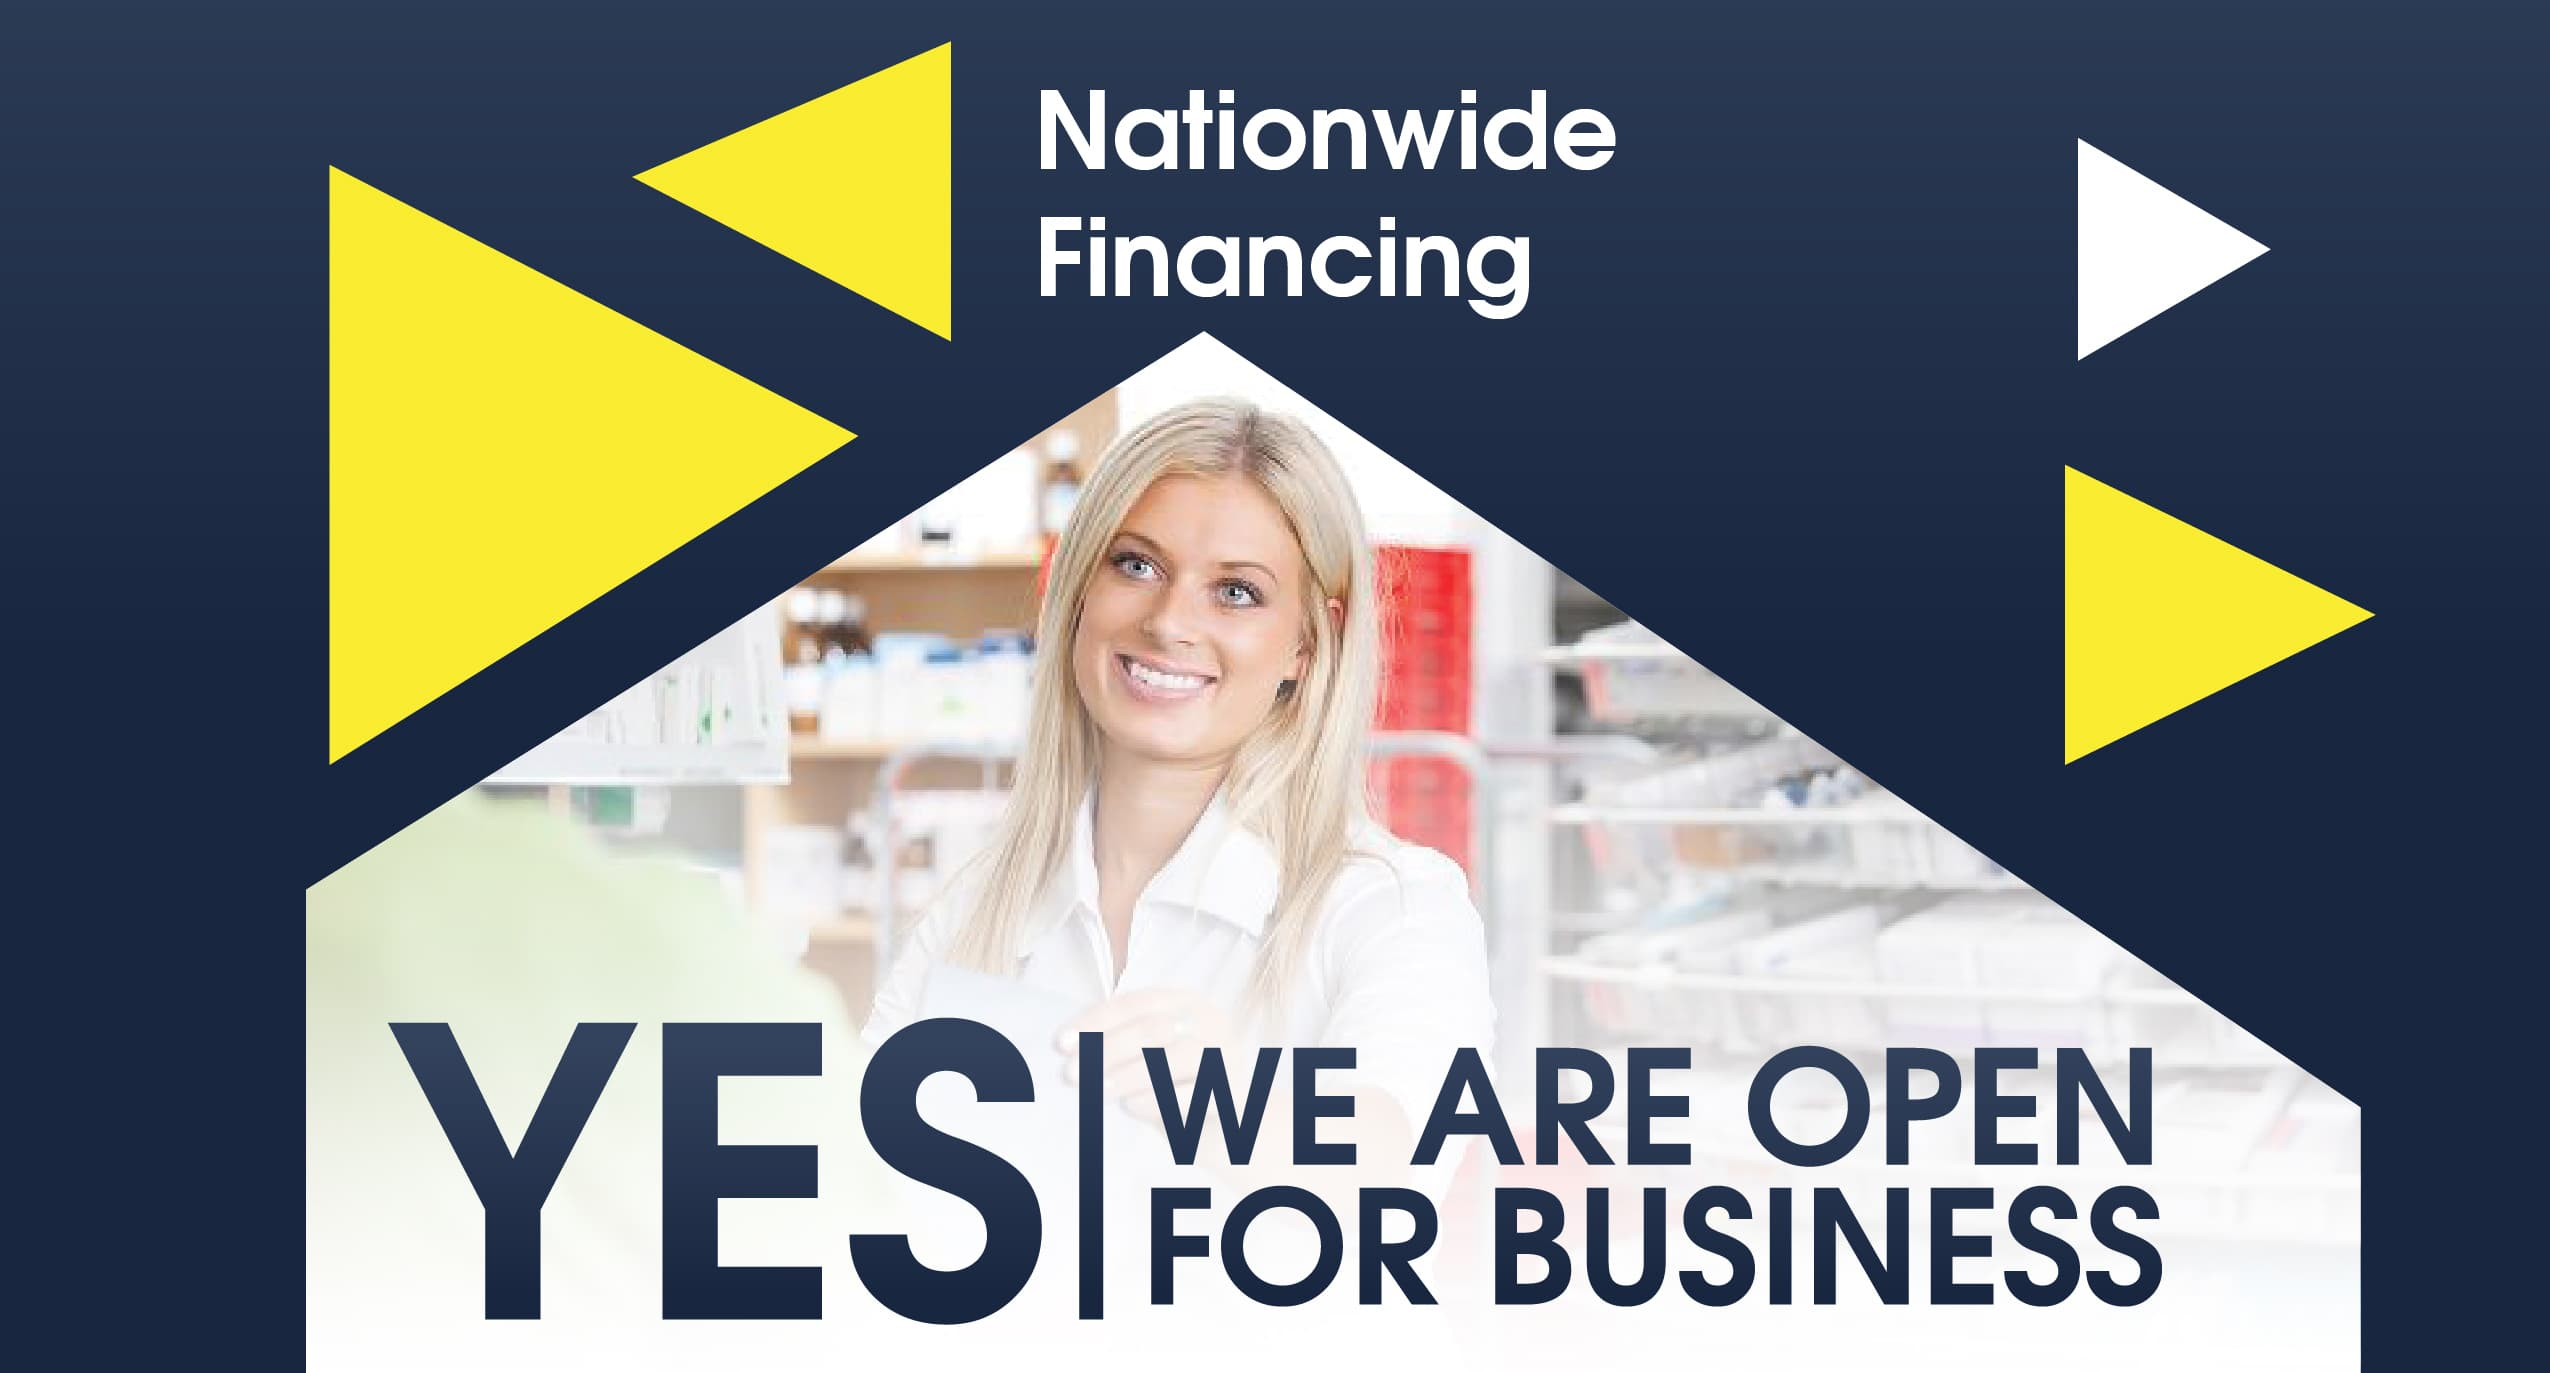 Nationwide Financing